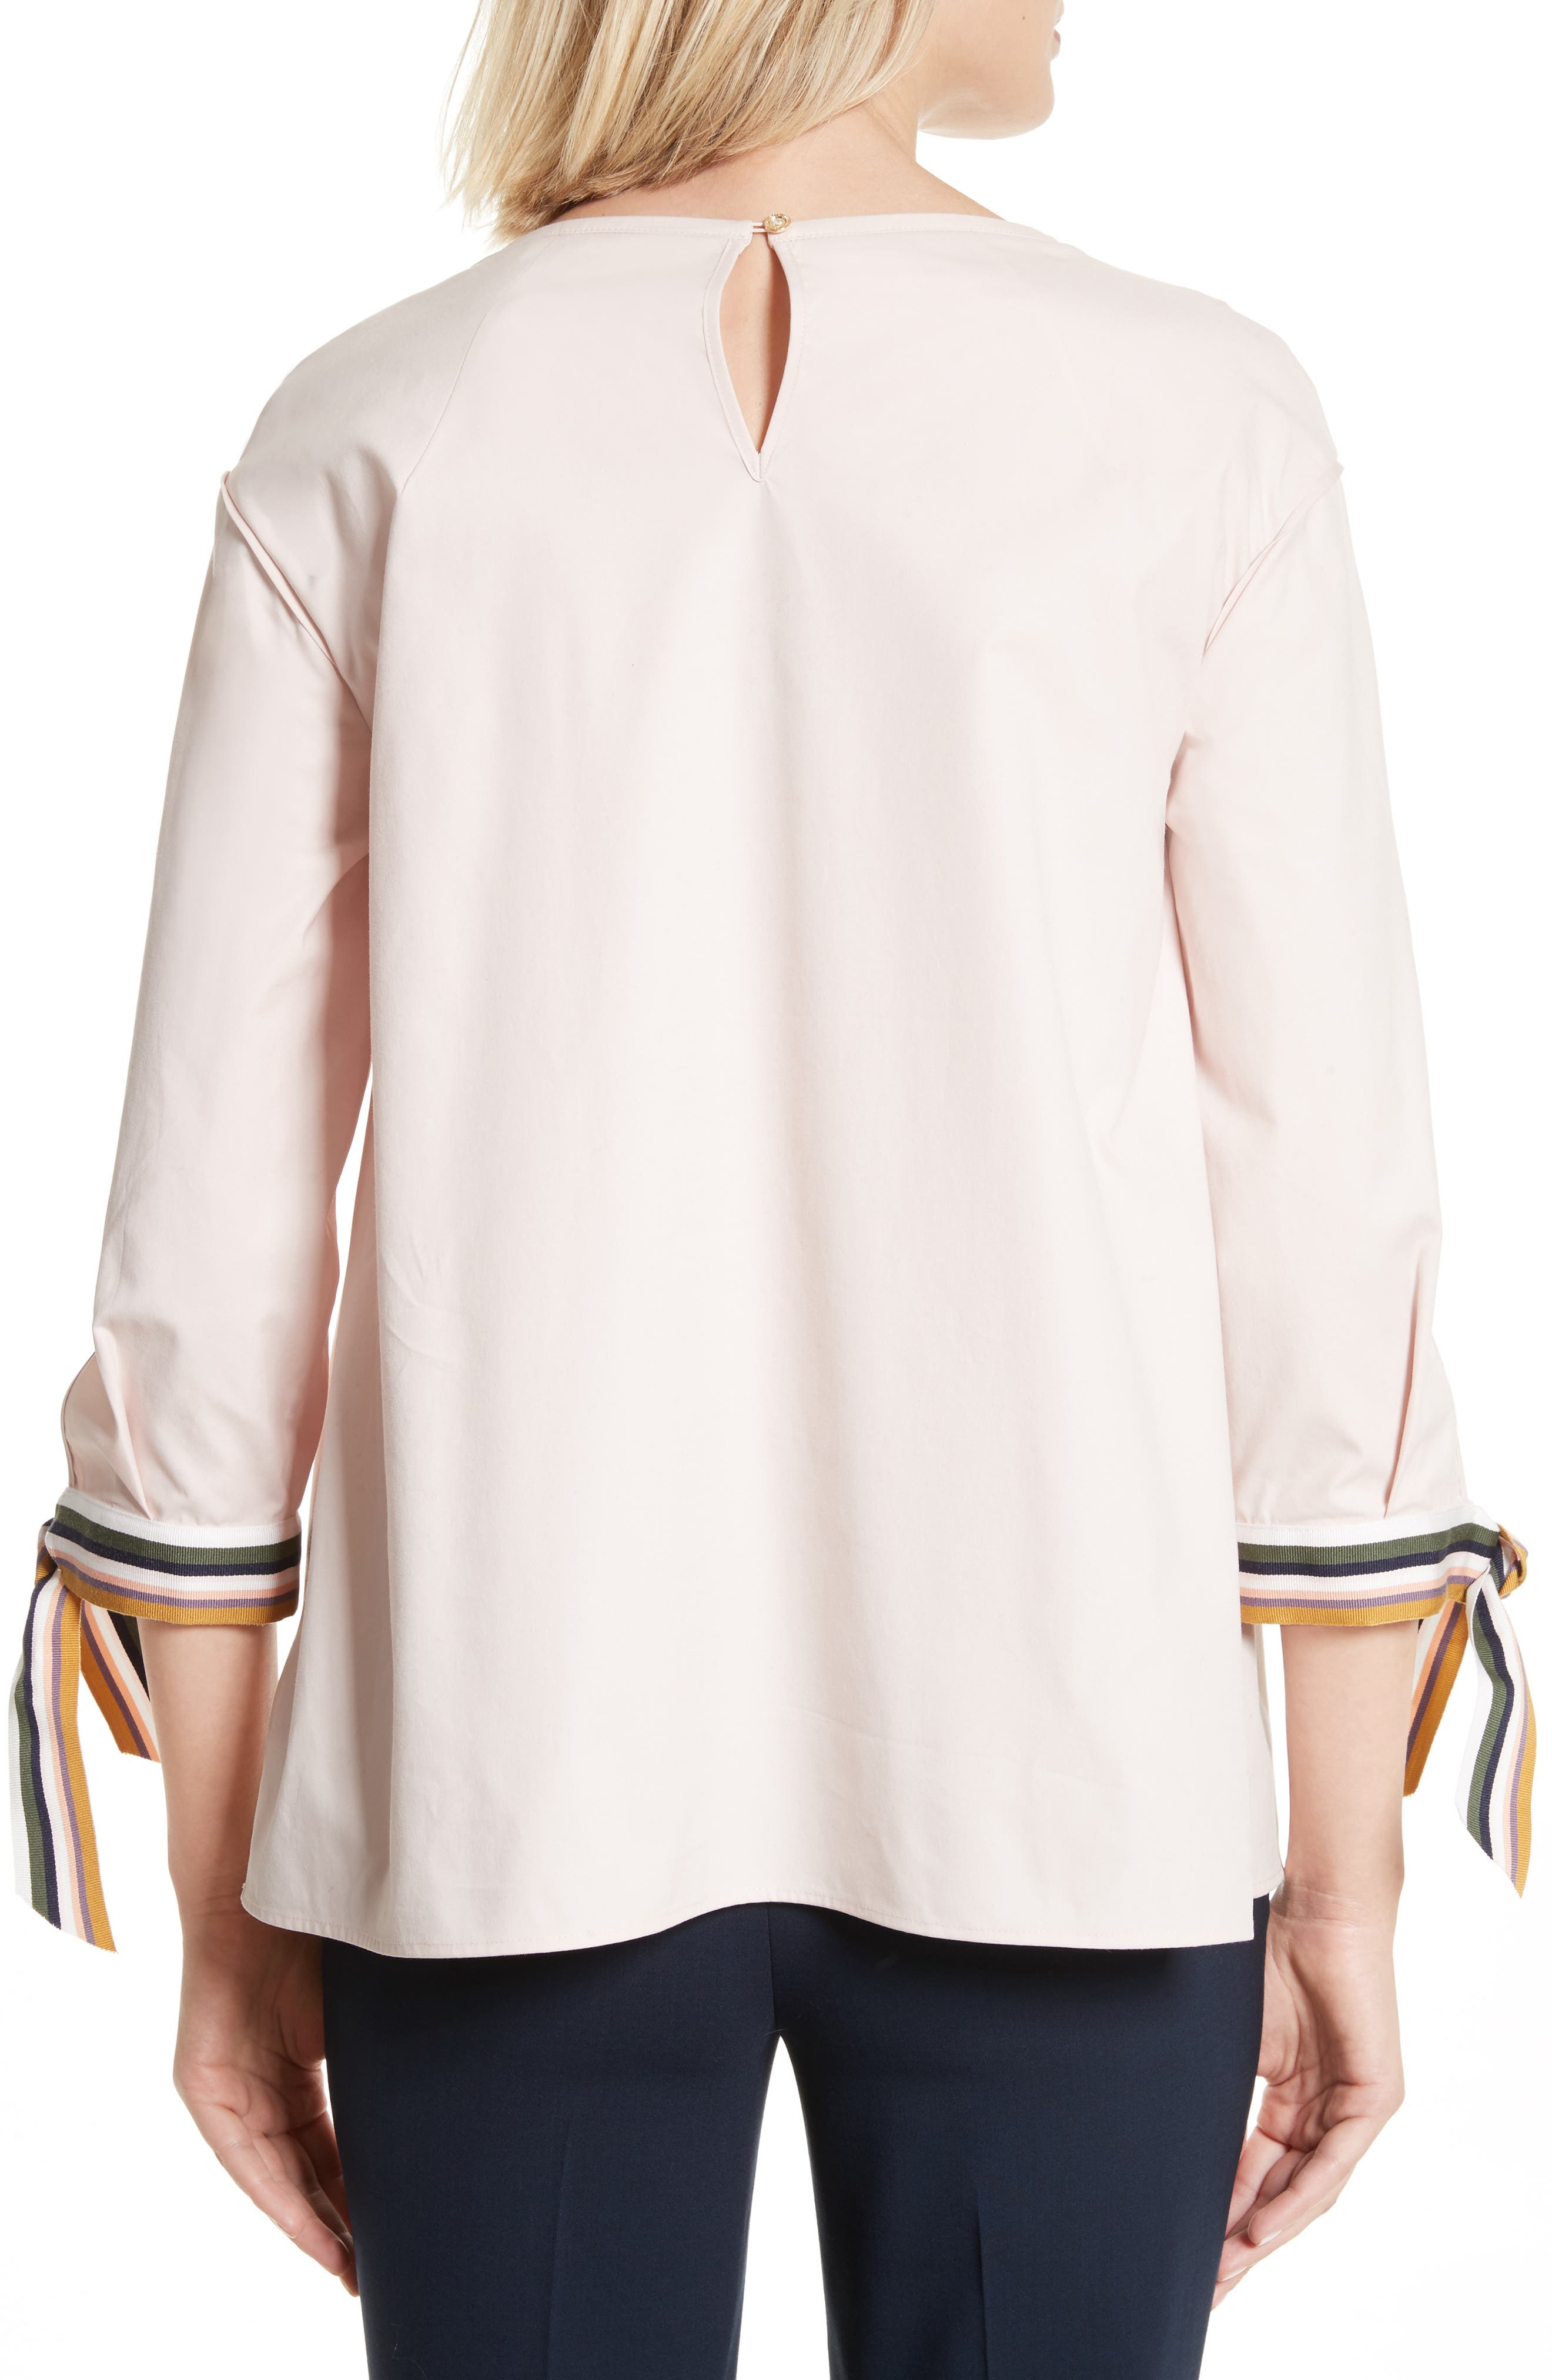 Lillou Tie Sleeve Top,                             Alternate thumbnail 2, color,                             672